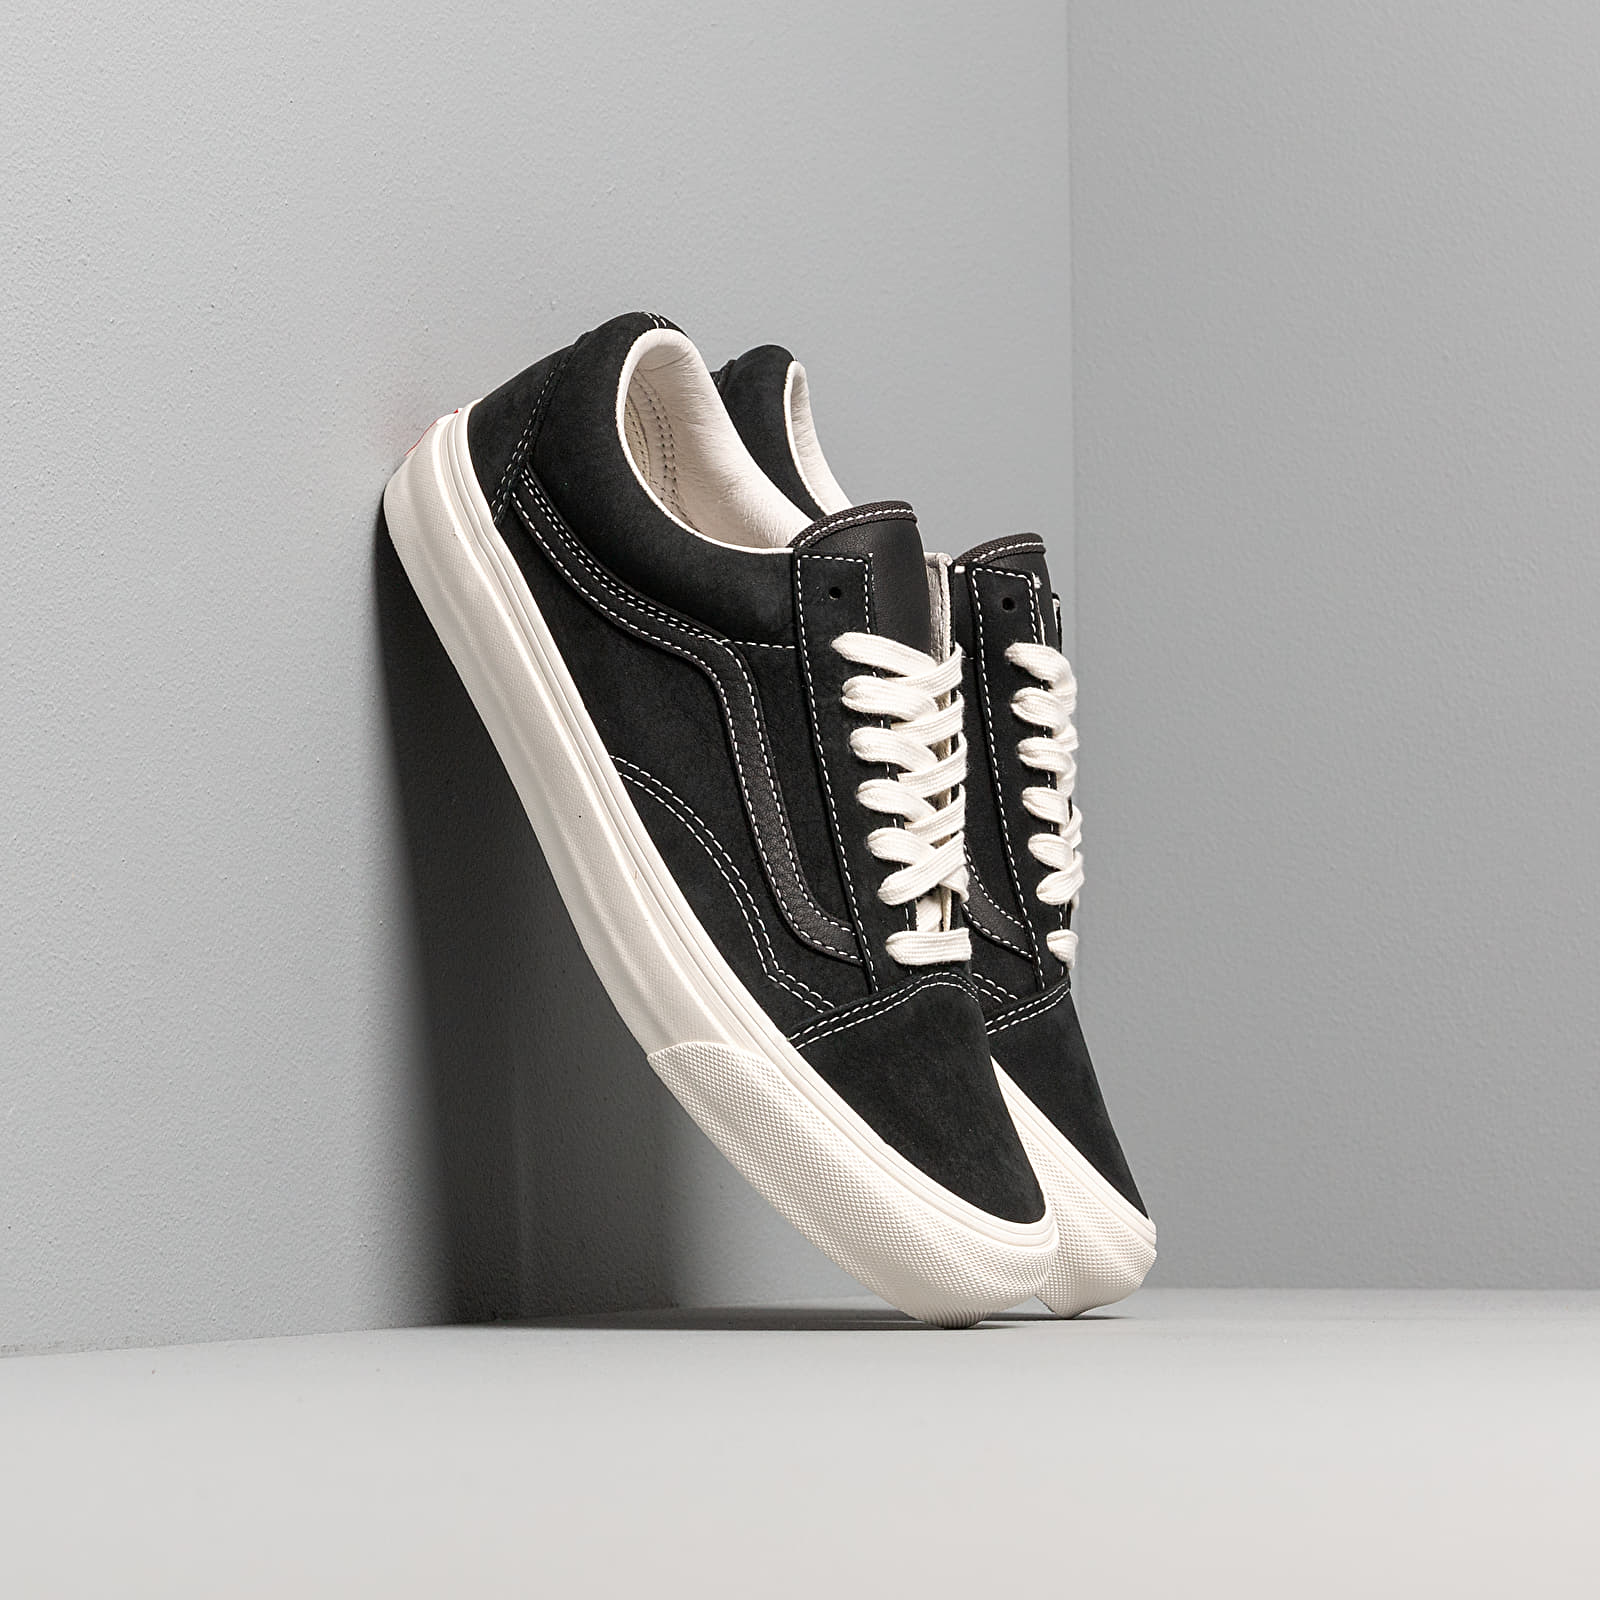 Buty męskie Vans OG Old Skool LX (Nubuck/ Leather) Raven/ Black